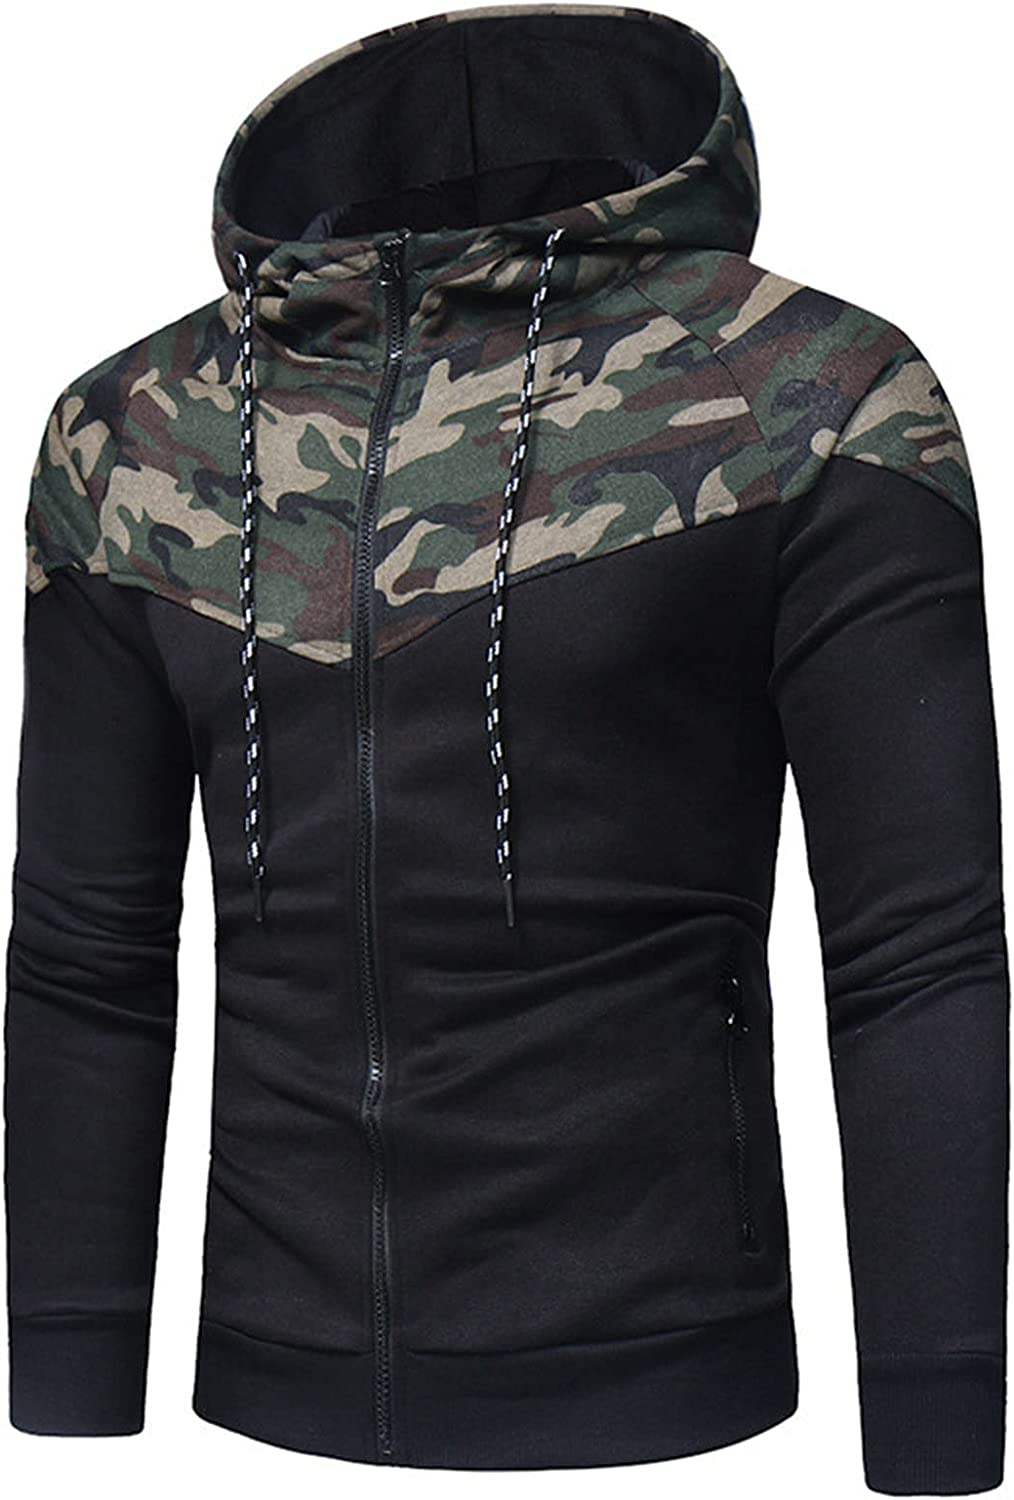 HONGJ Camo Hoodies for Mens, Fall Zipper Camouflage Patchwork Drawstring Hooded Sweatshirts Slim Fit Casual Jackets